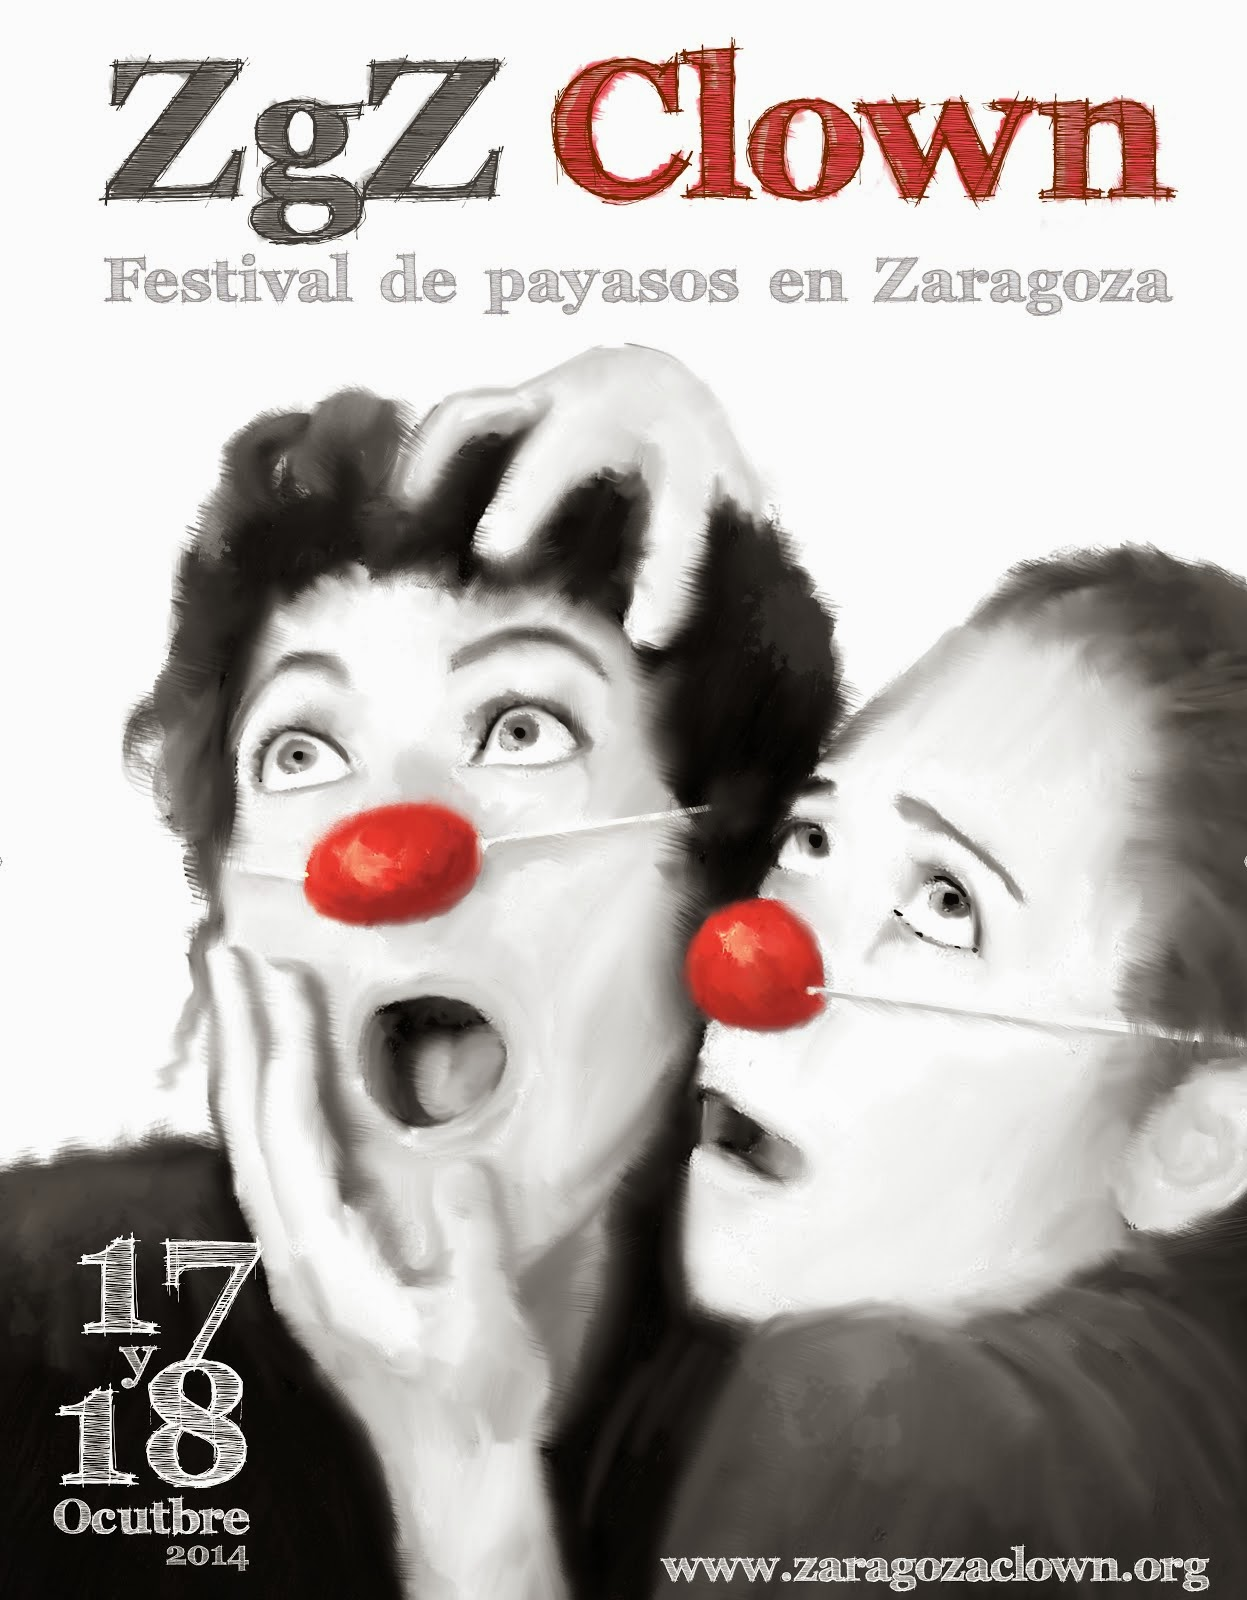 Zaragoza Clown